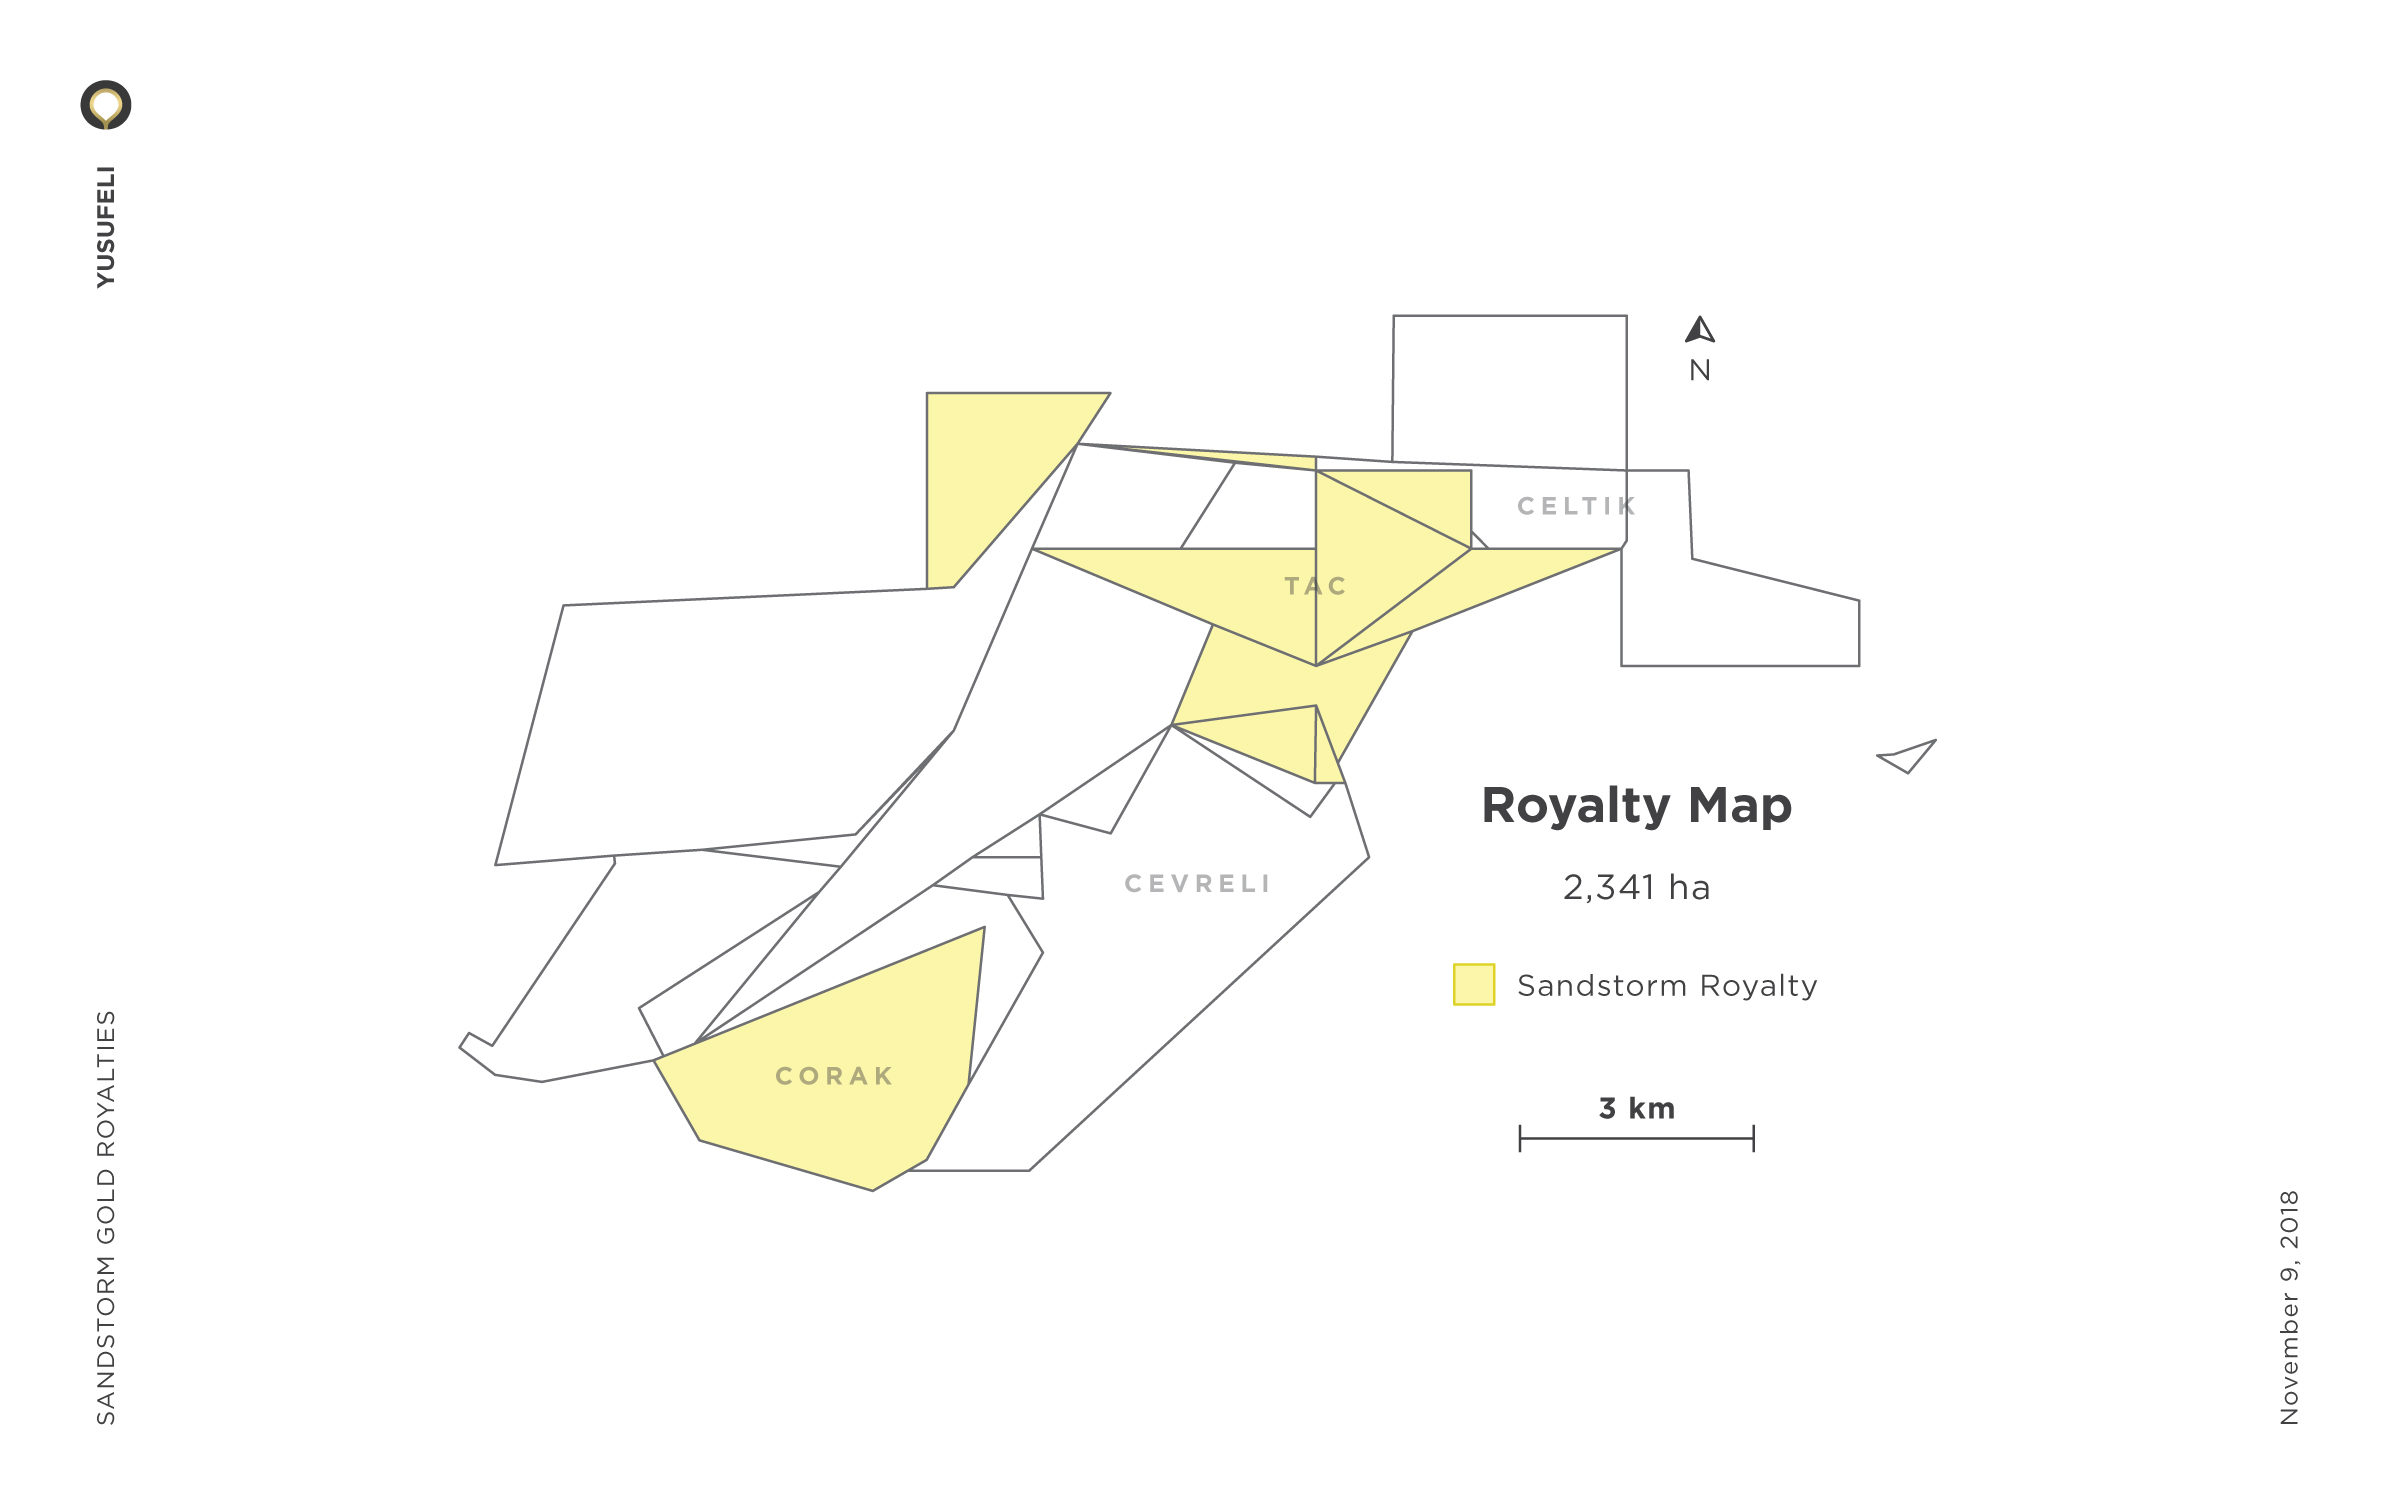 Yusufeli Royalty Map